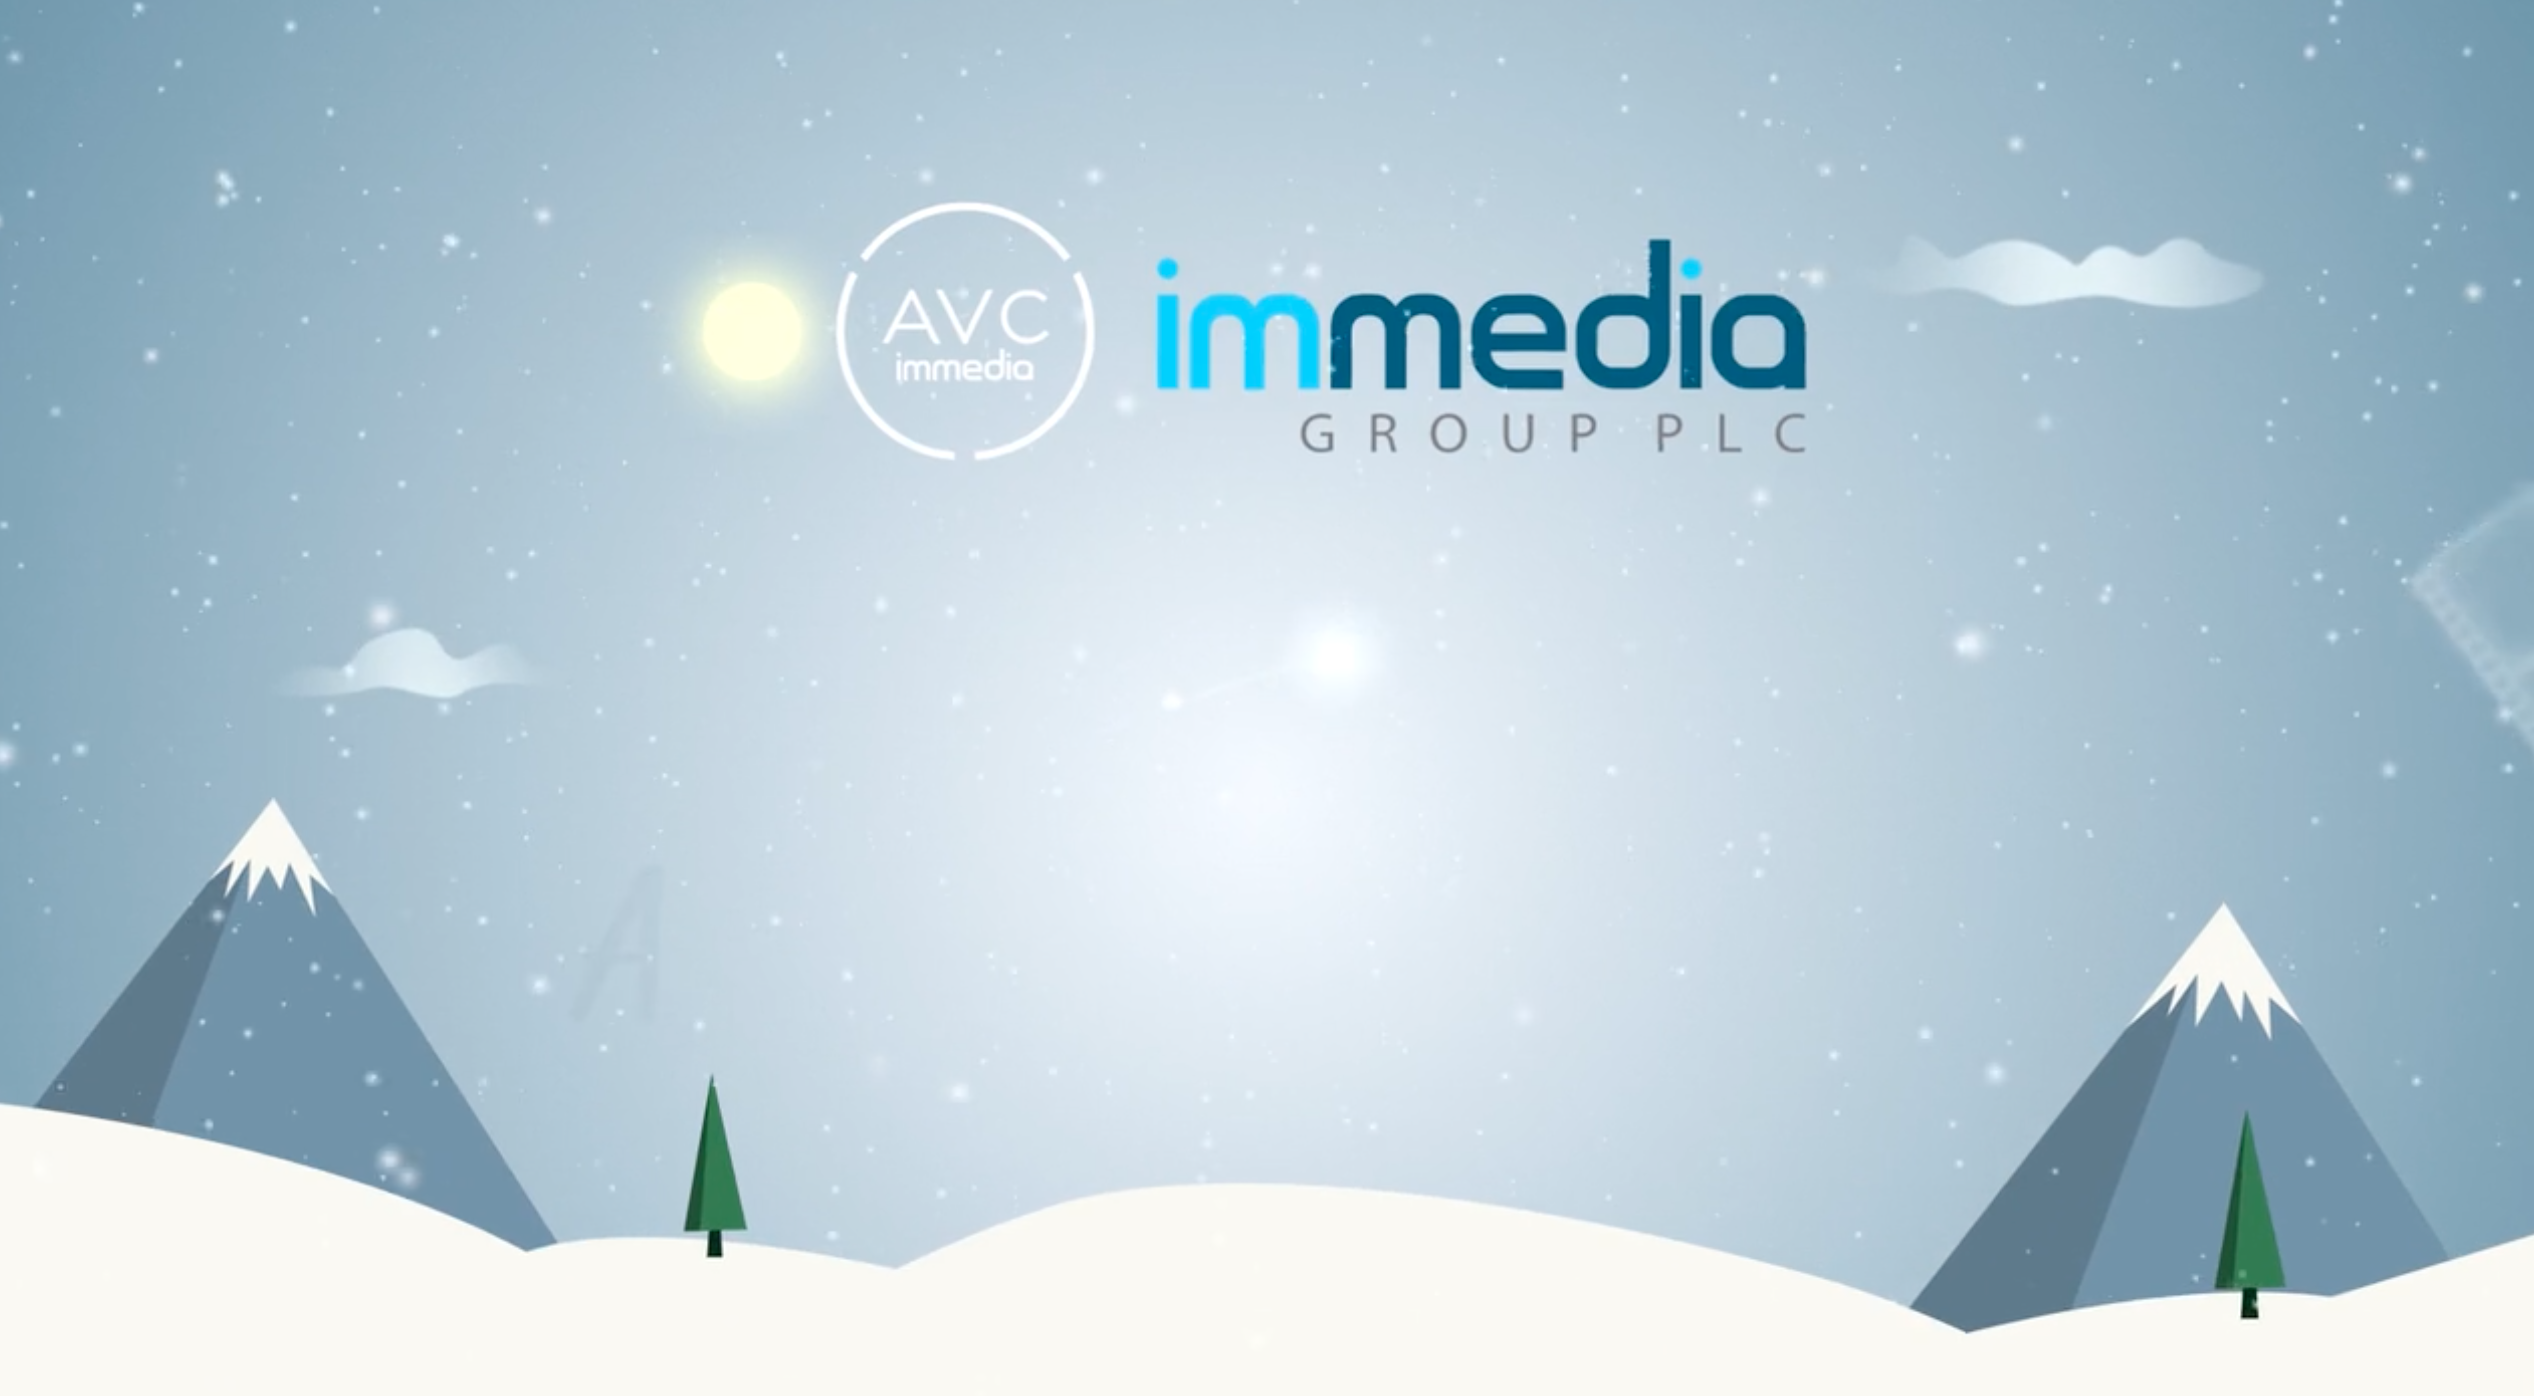 Merry Christmas from Immedia Group PLC